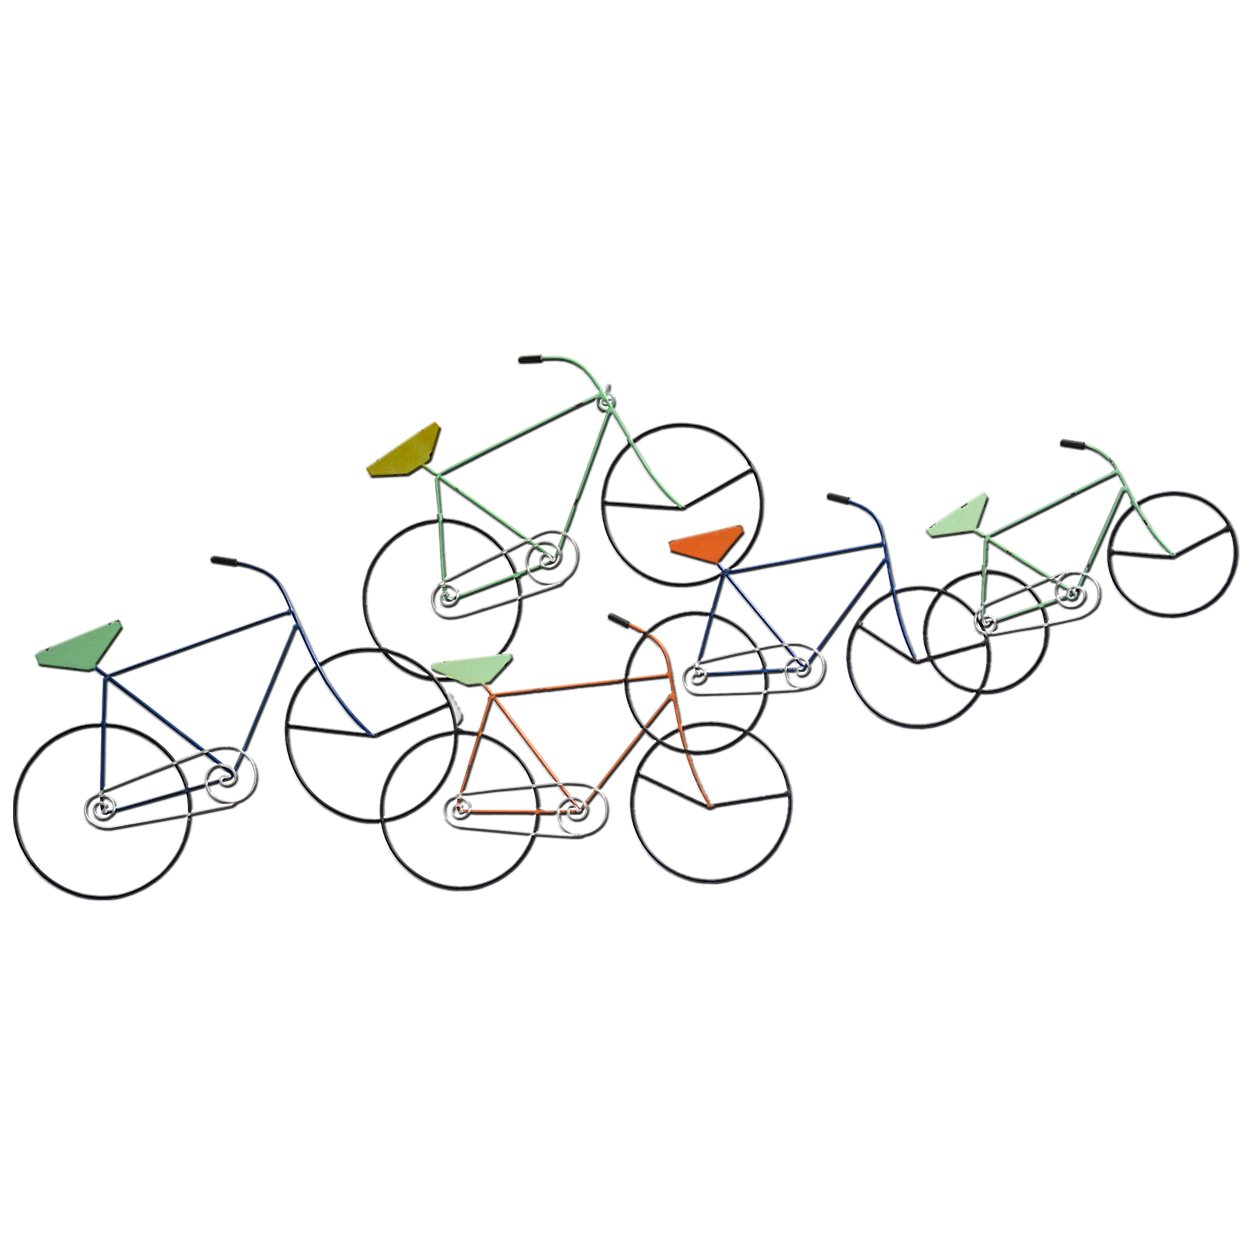 Carrick Design Metal Wall Art in Bici 107 x 48 cm 2050595